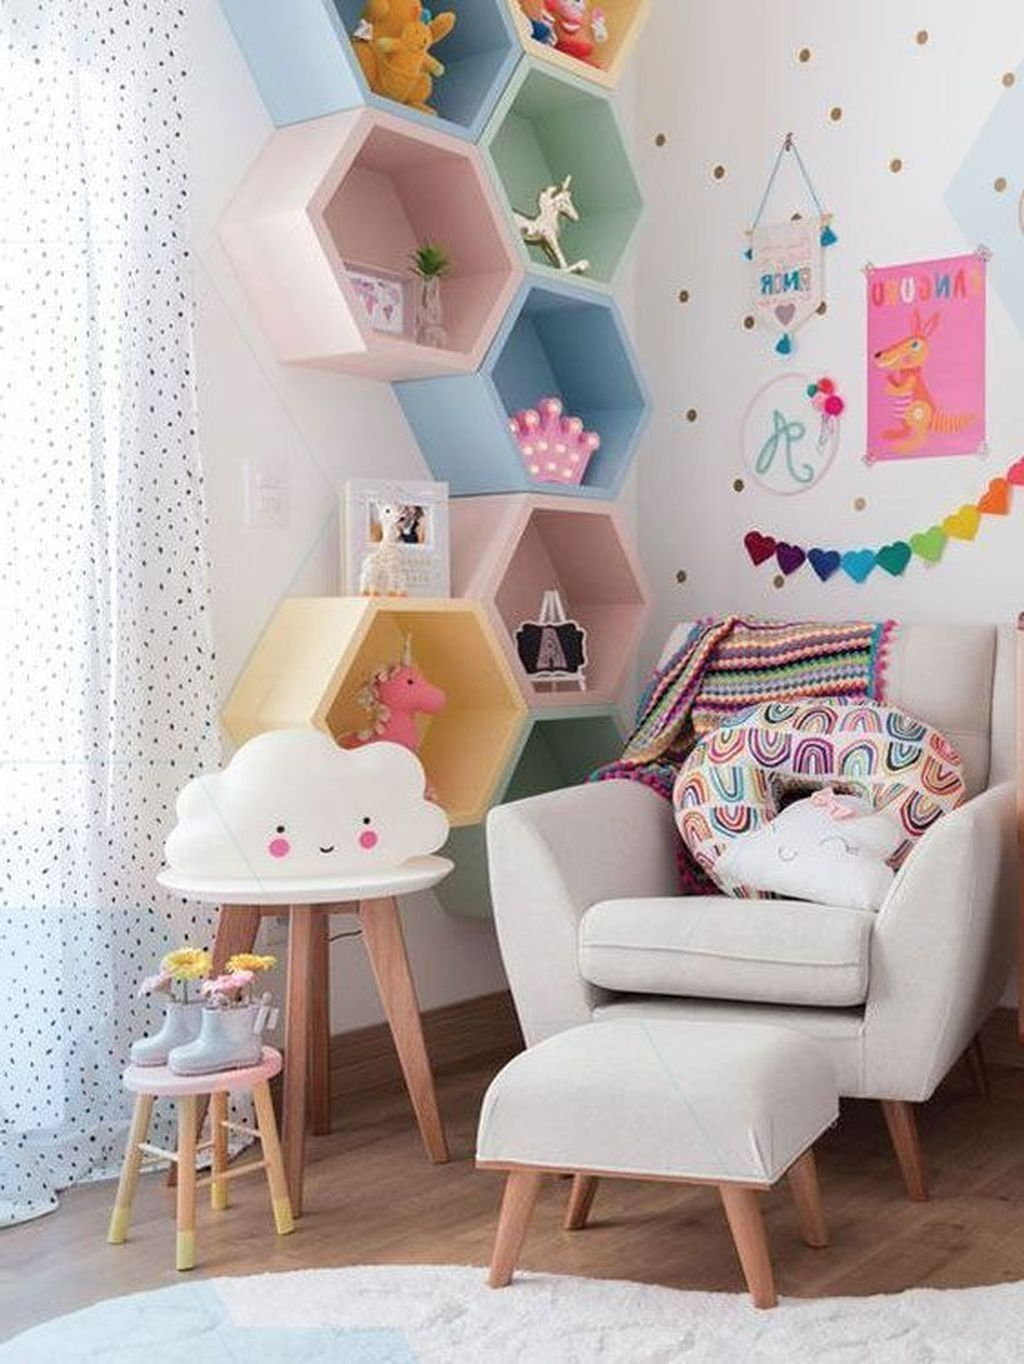 30+ Awesome Child's Room Ideas With Wall Decoration